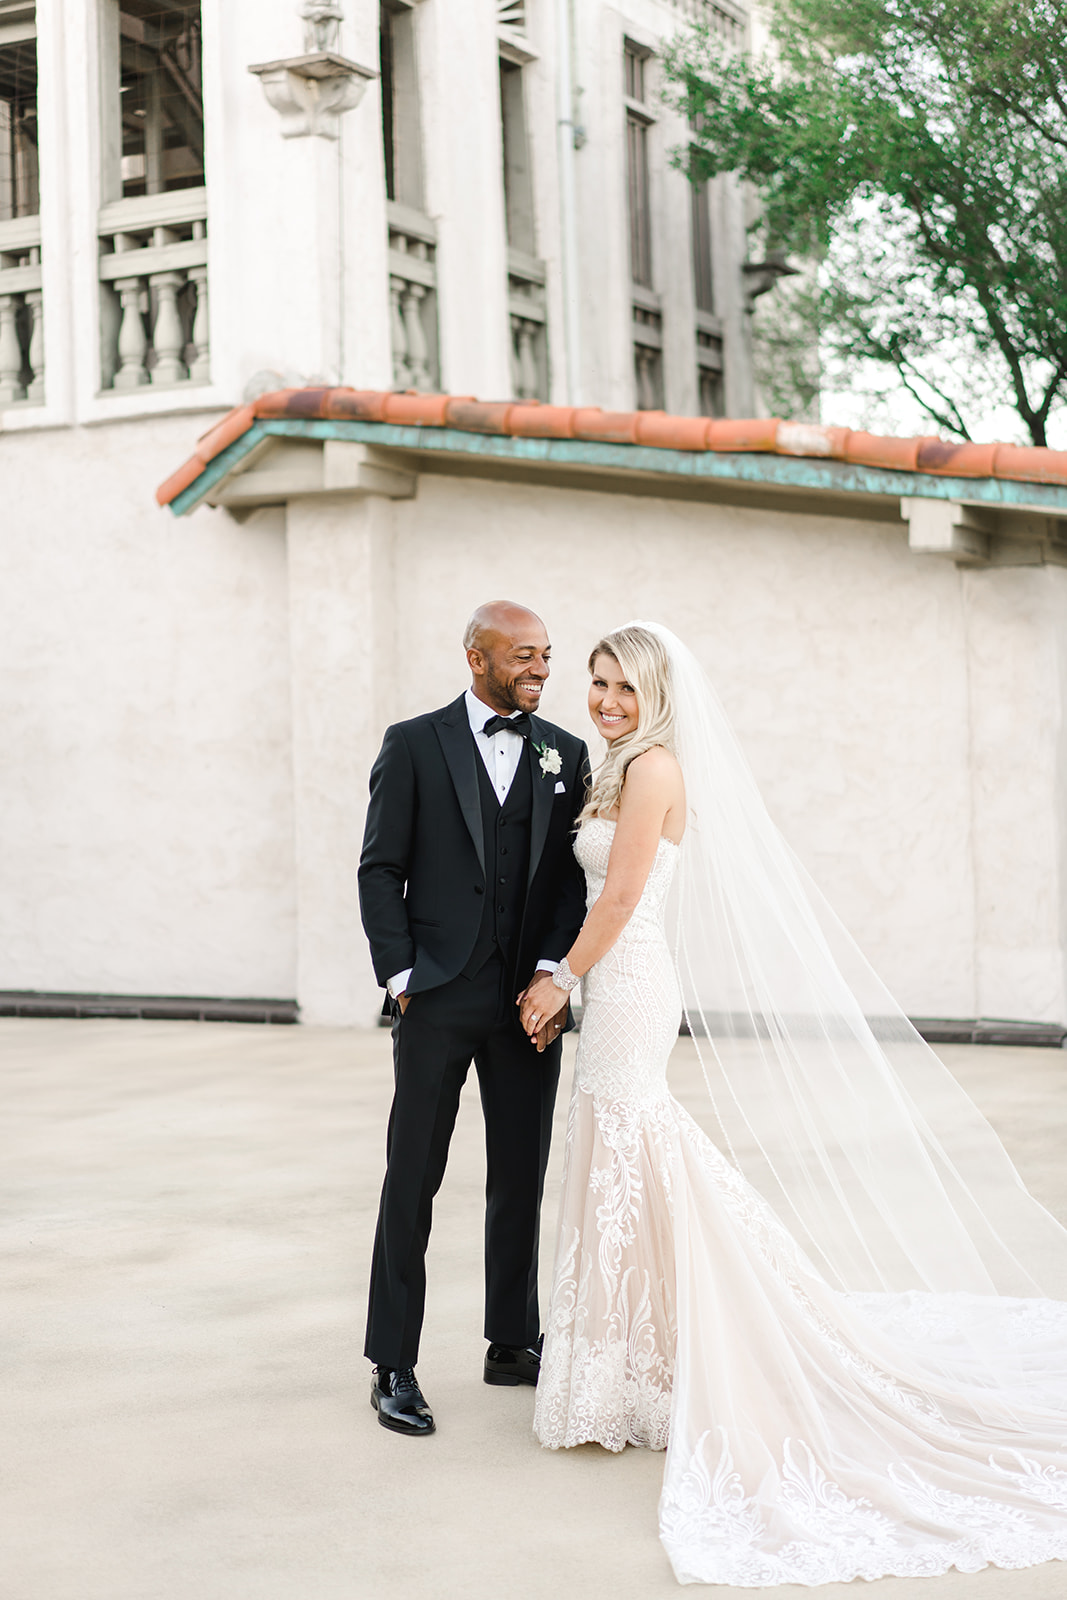 Villa Antonia wedding, Villa Antonia wedding photos, Austin wedding photographer